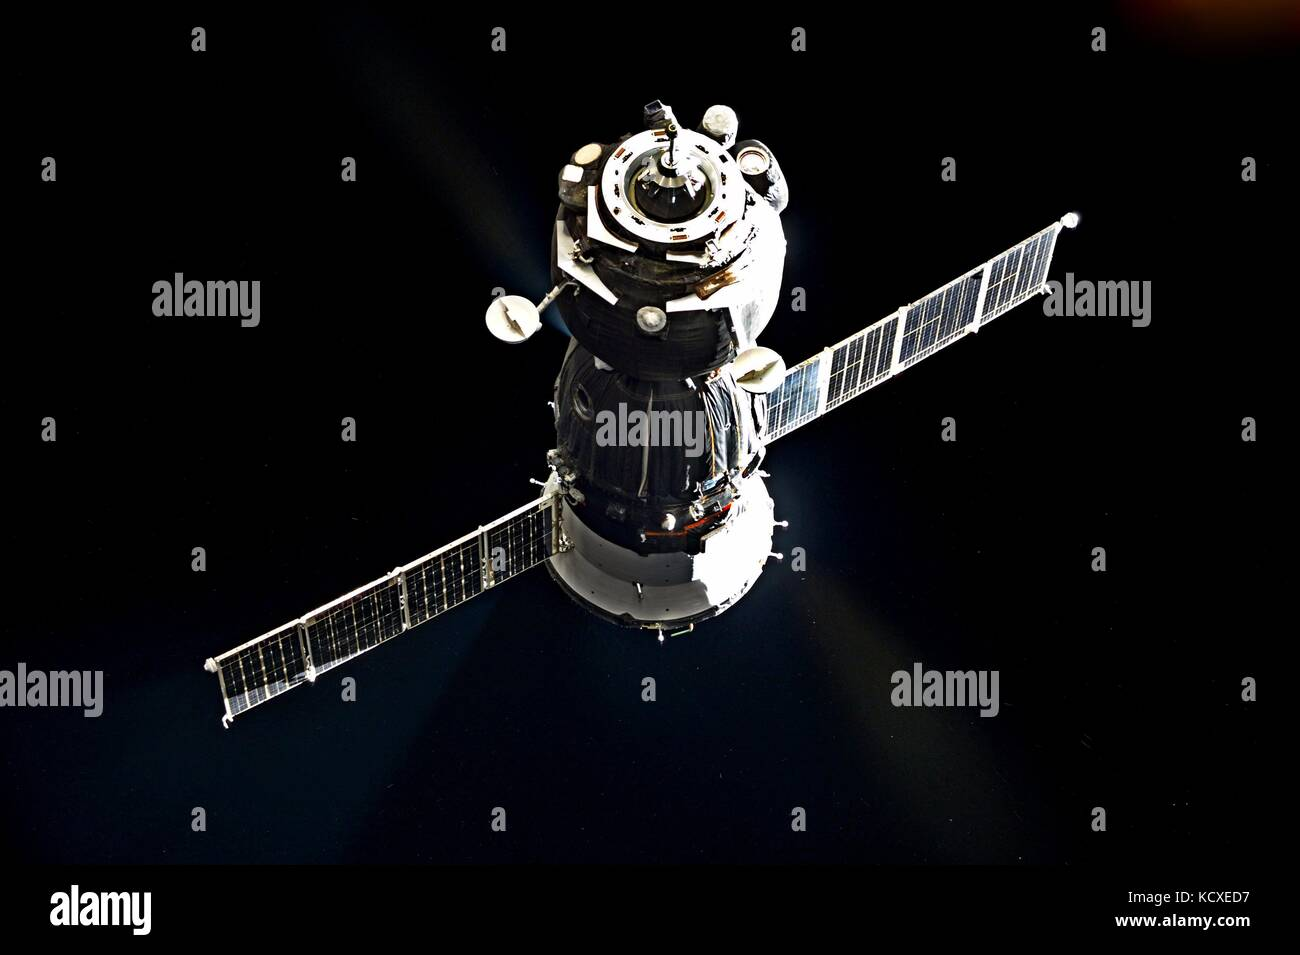 The Russian Soyuz spacecraft approaches the International Space Station for docking August 5, 2015 in Earth Orbit. Stock Photo